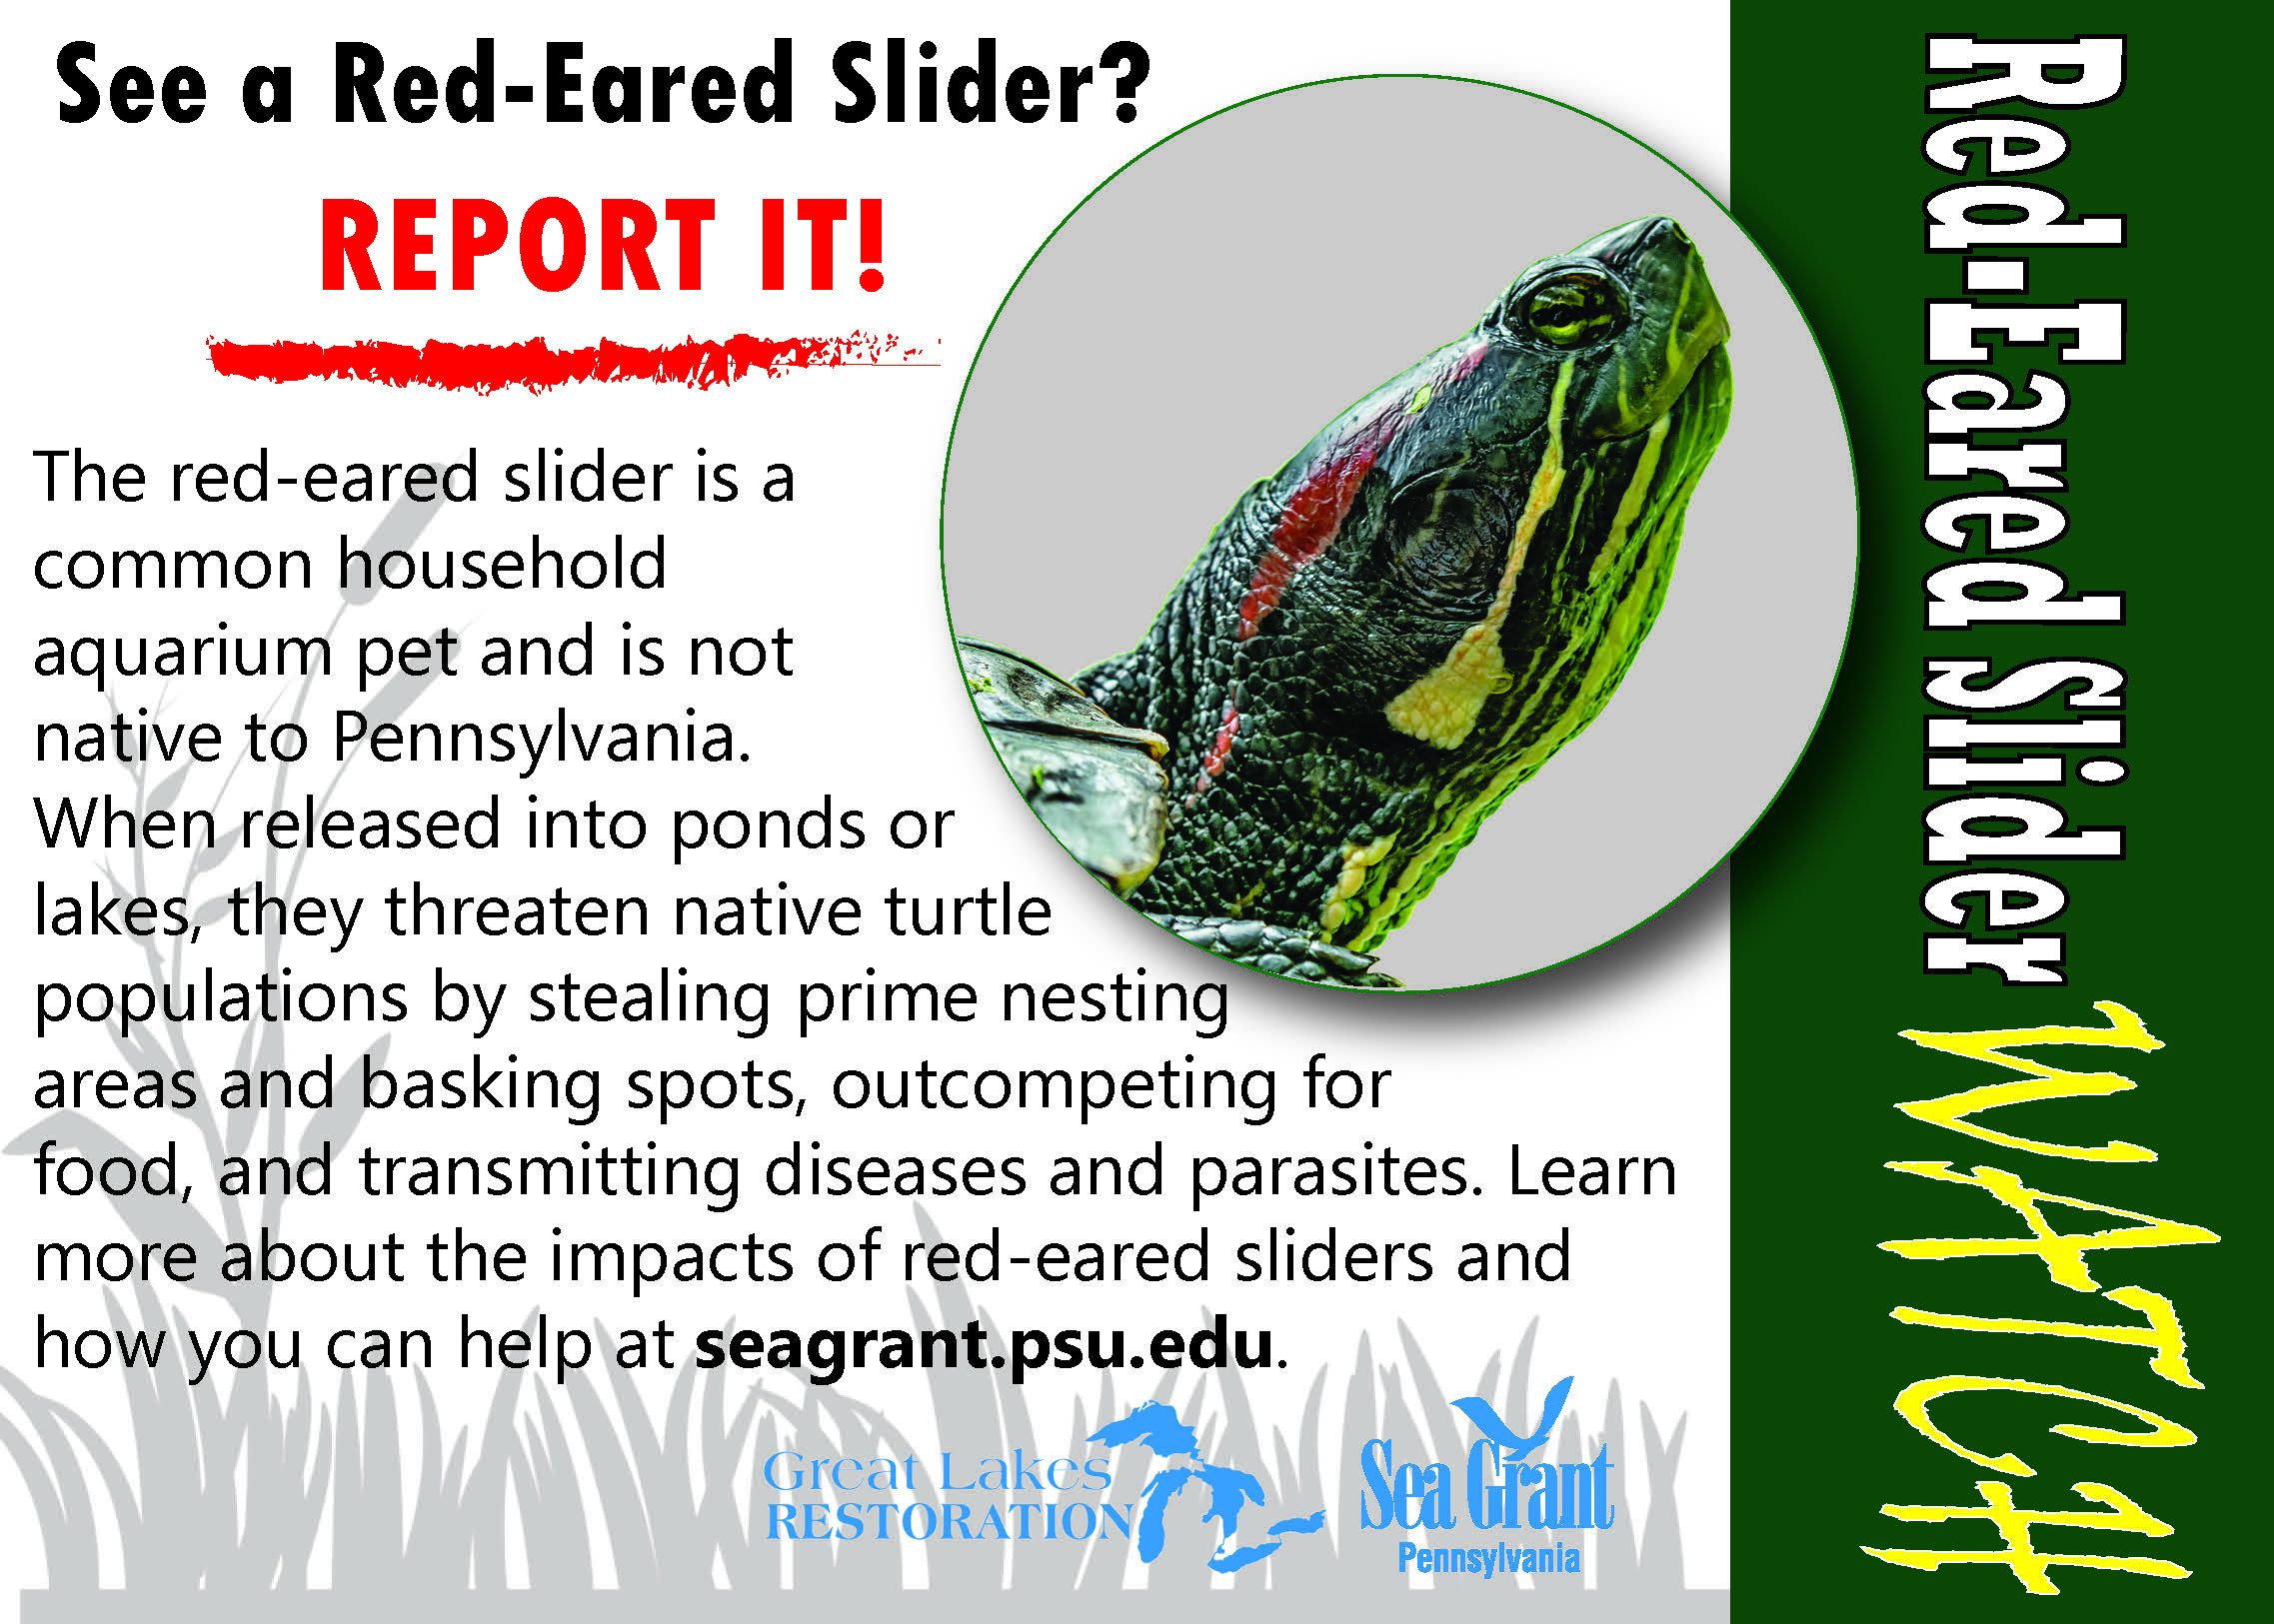 Removing the Invasive Red-eared Slider from Presque Isle